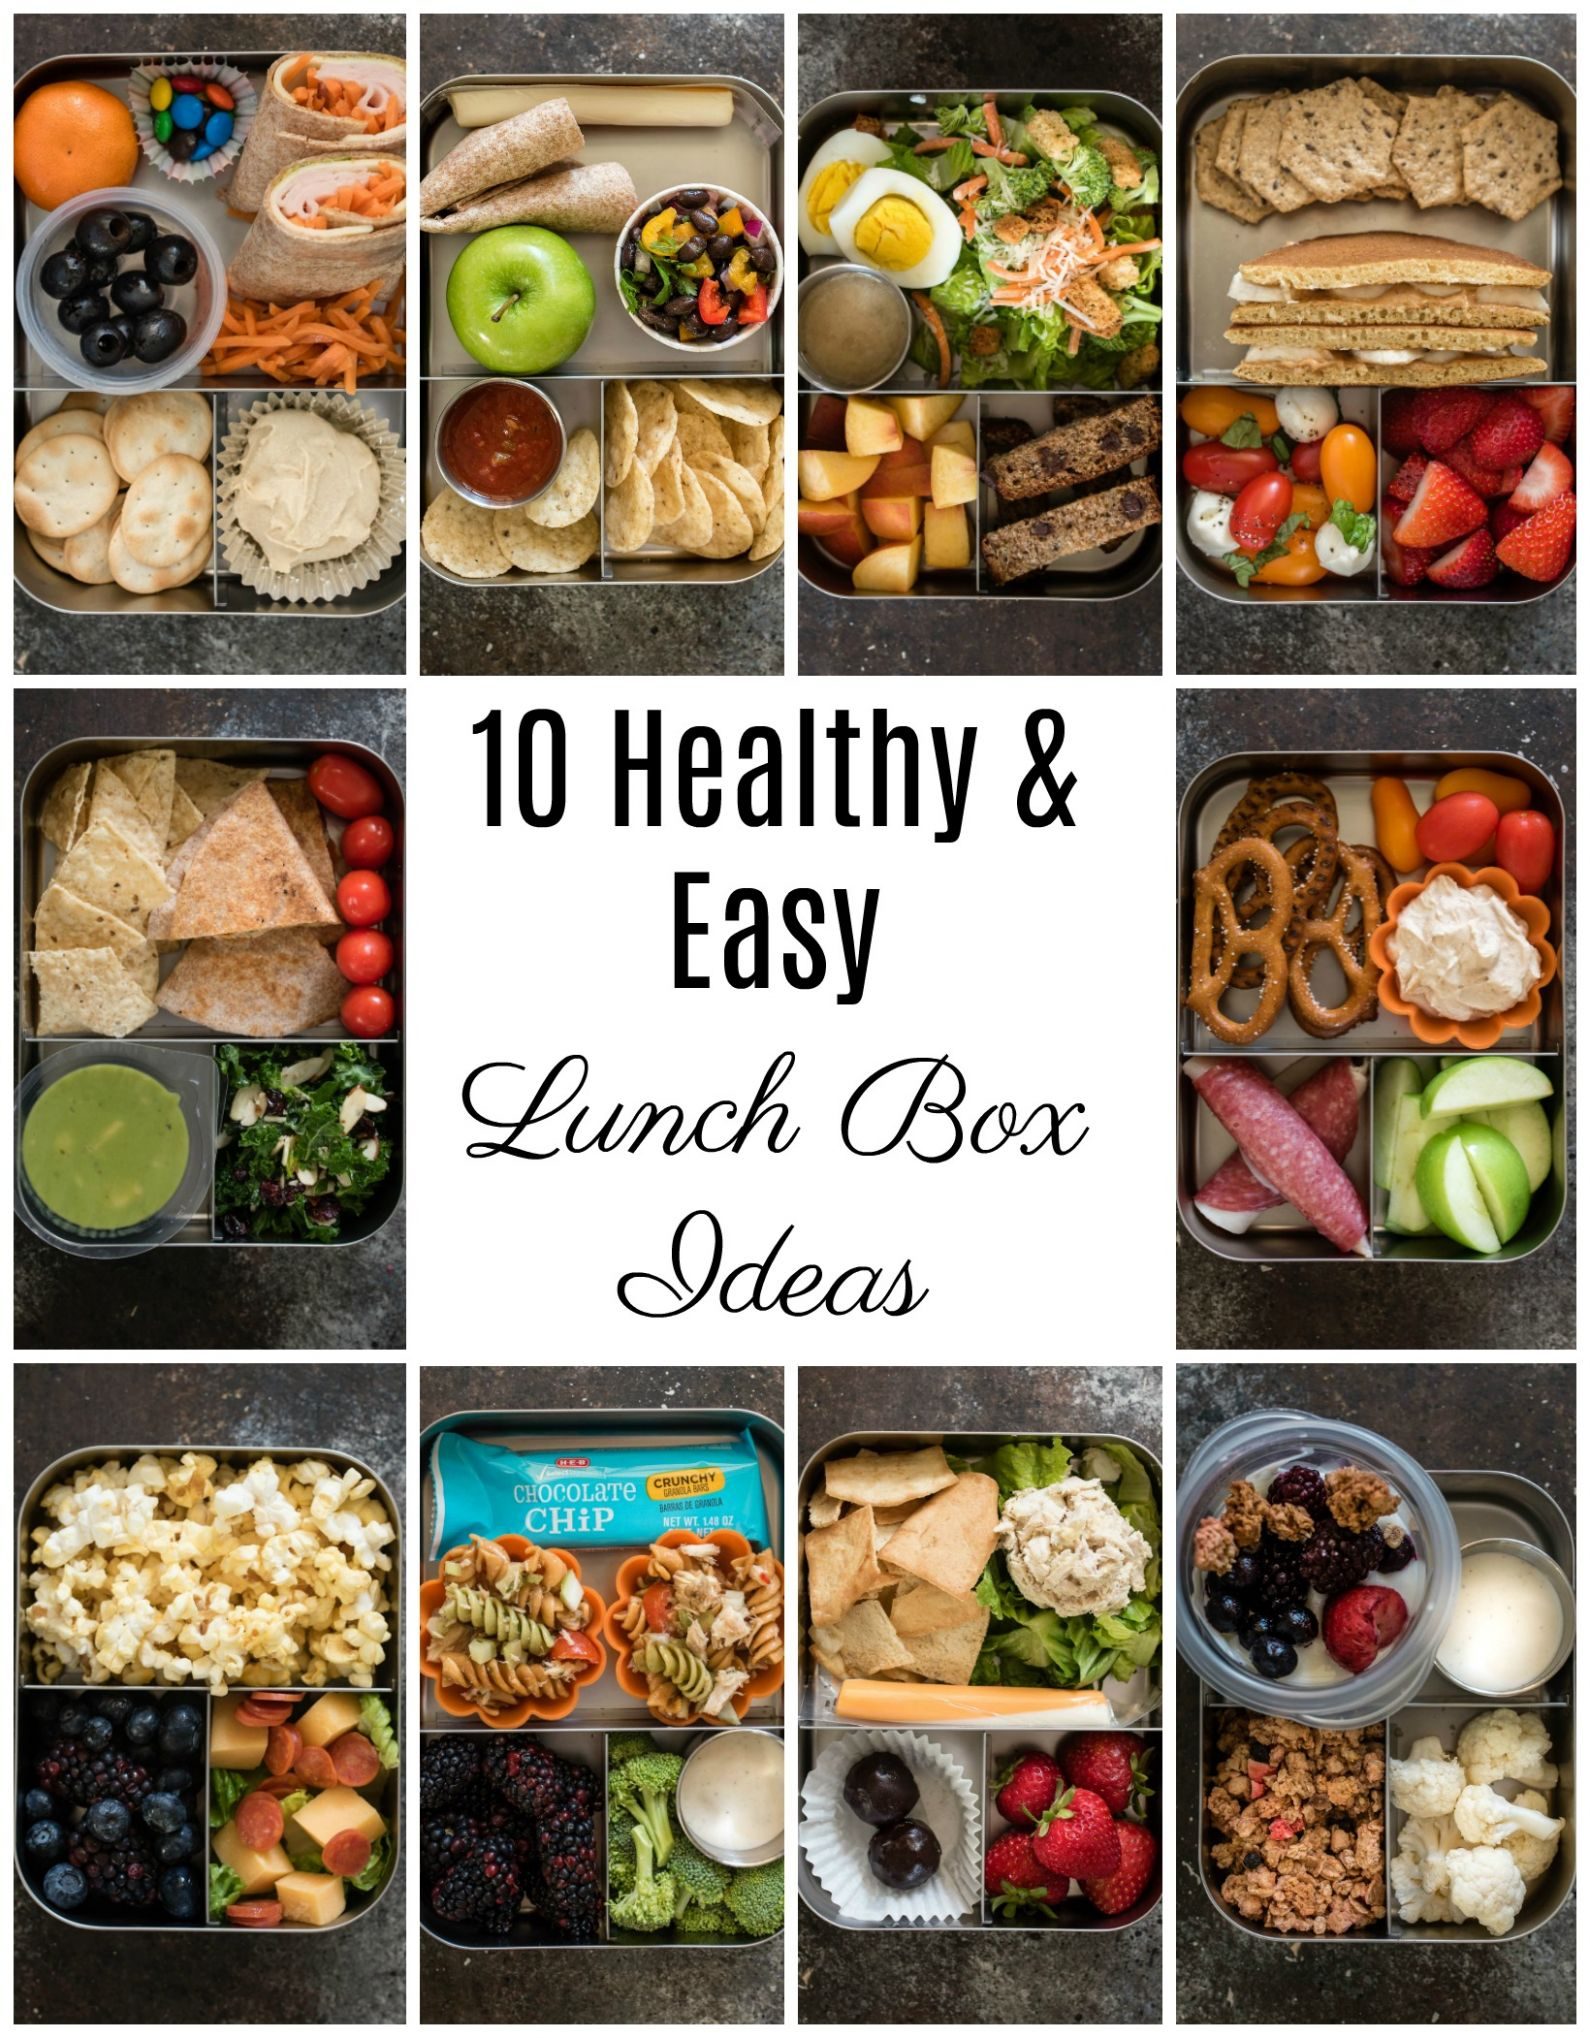 Pancake Sandwich and Healthy LunchBoxes - Simple Recipes For Lunch